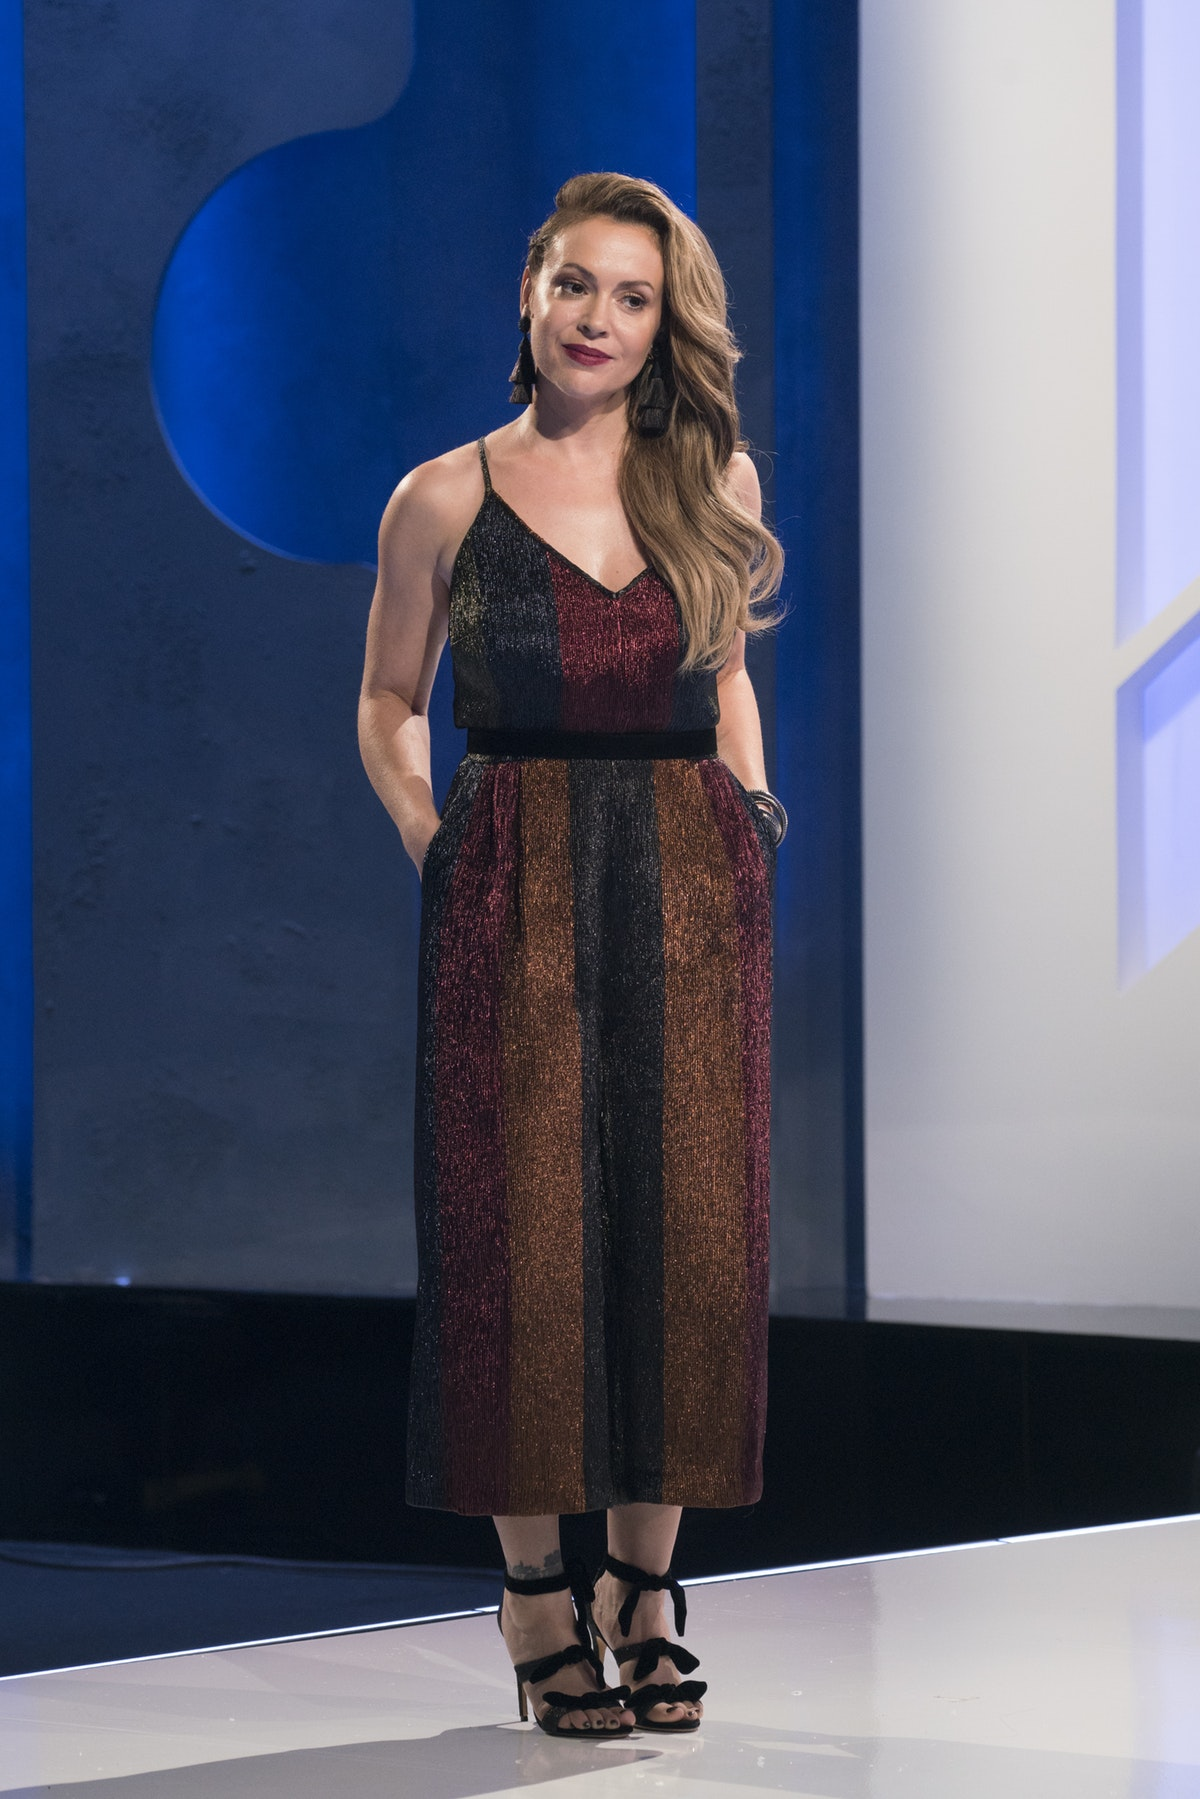 The 'Project Runway All Stars' Twists Are Just Getting Started, According To Alyssa Milano